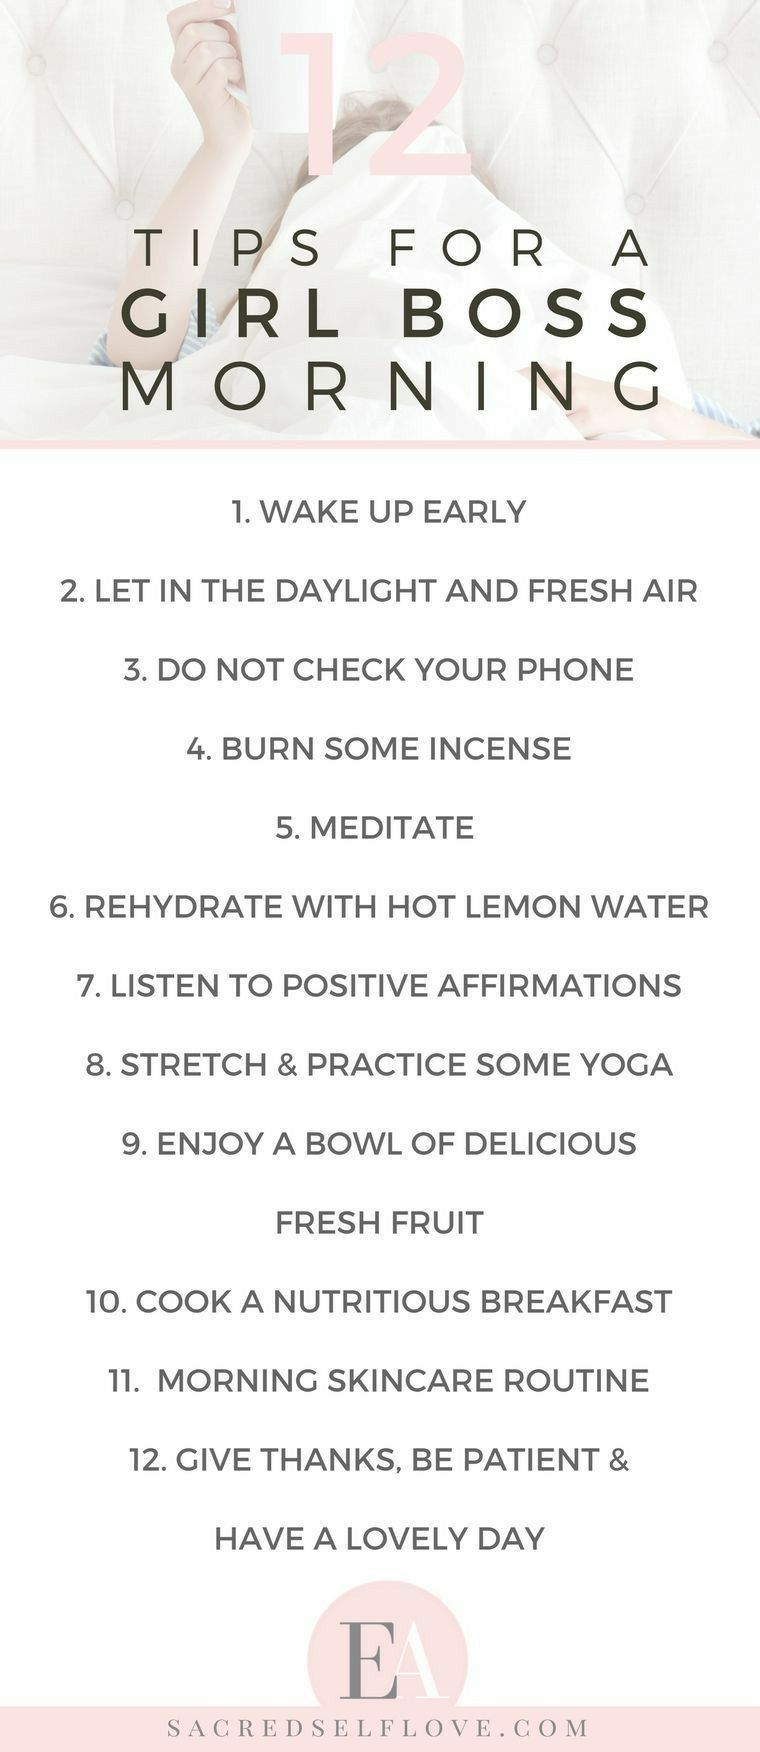 With these tips, I could have the best morning ever, setting myself up for a fabulous day